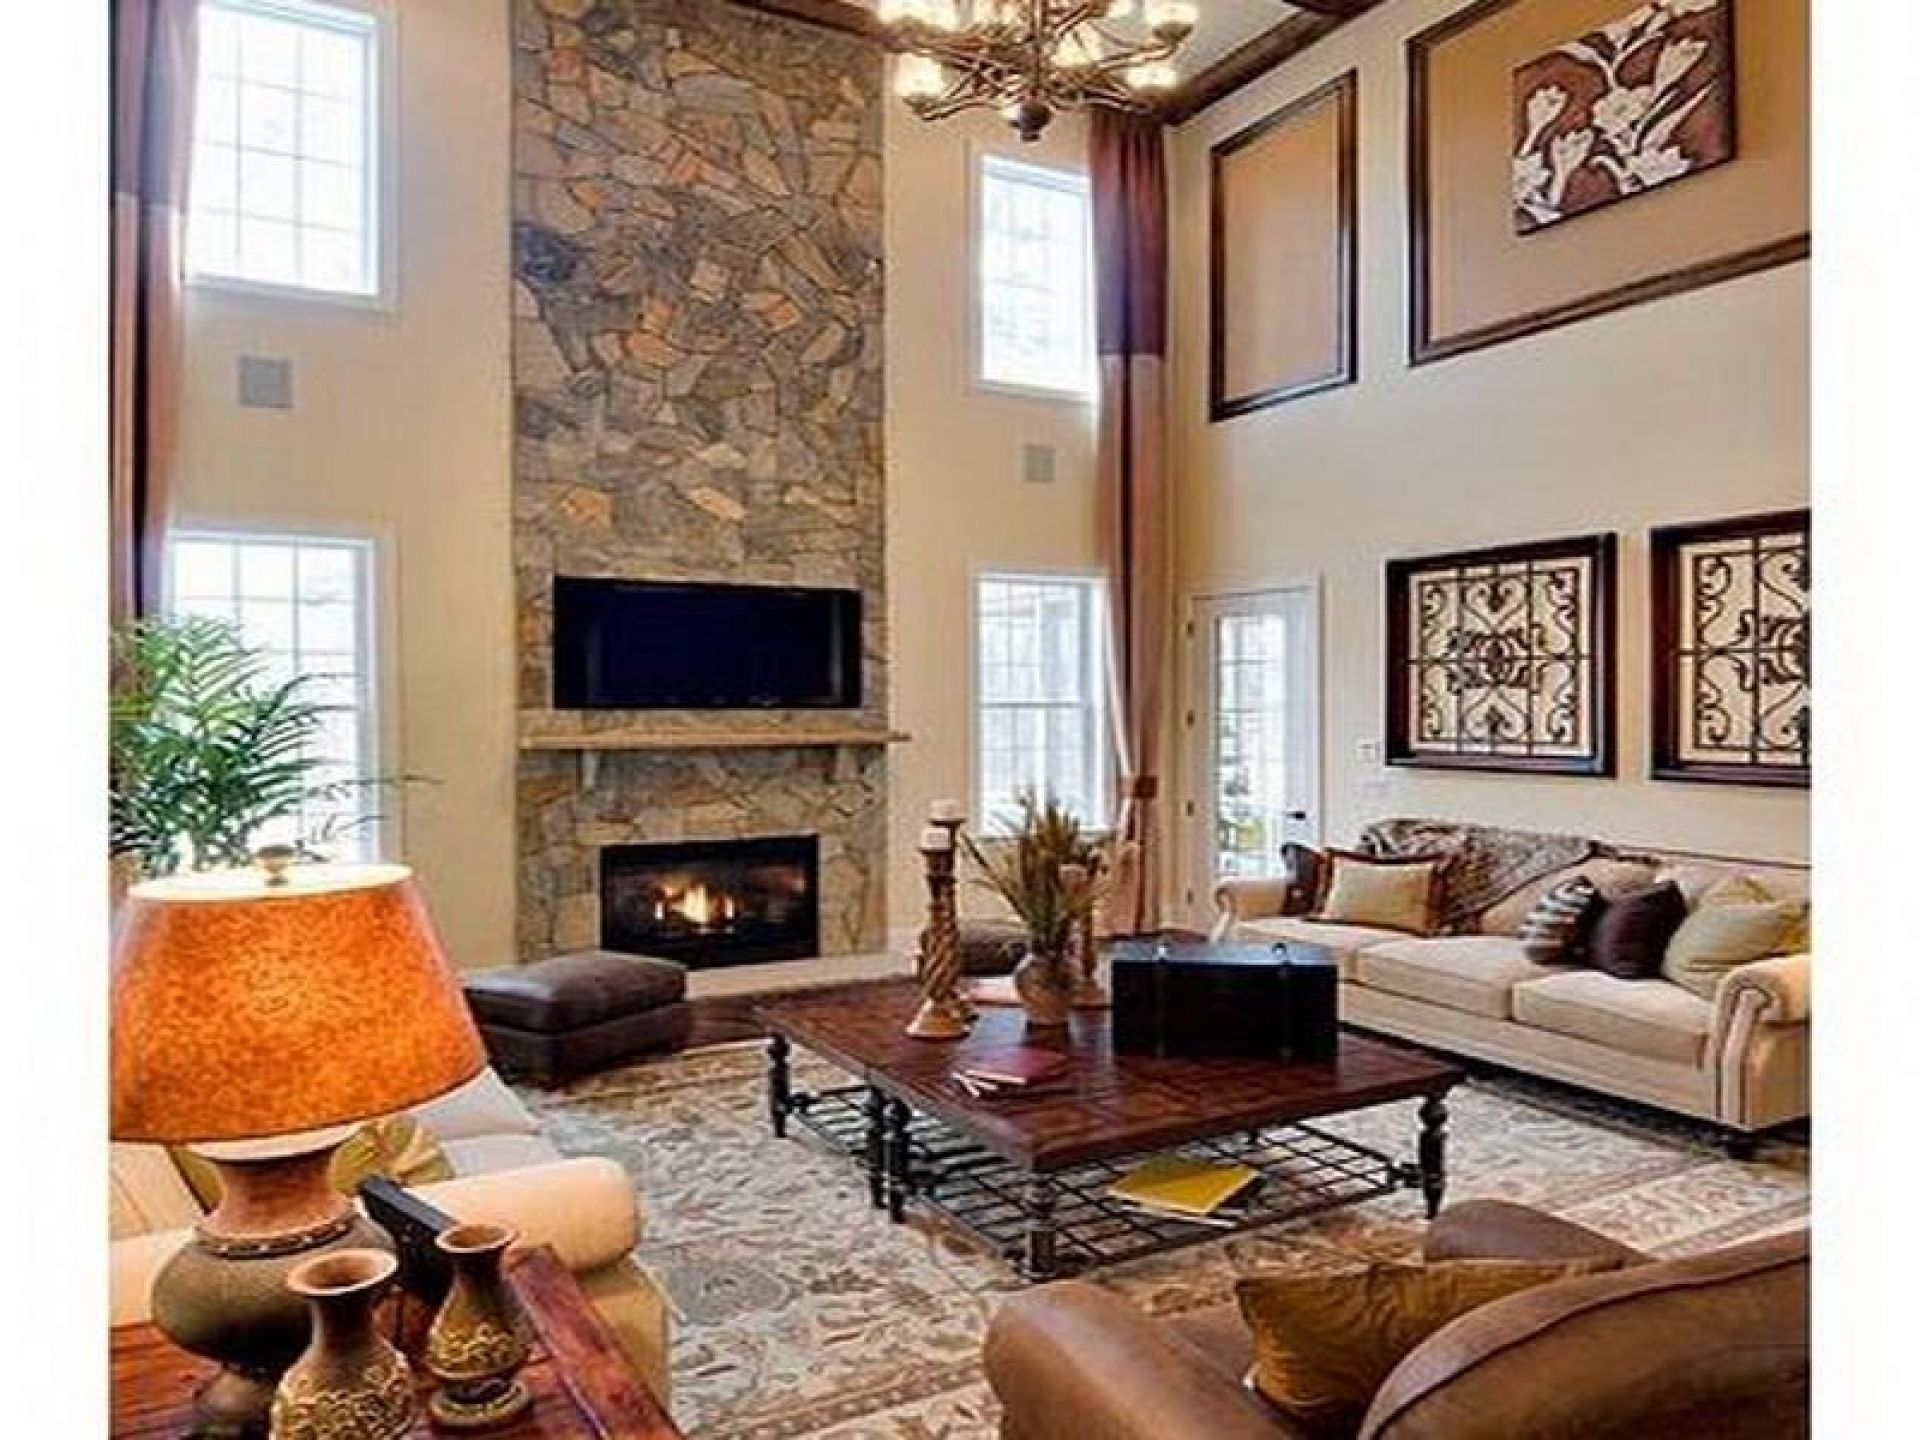 decorate two story family room - Google Search | Family ...